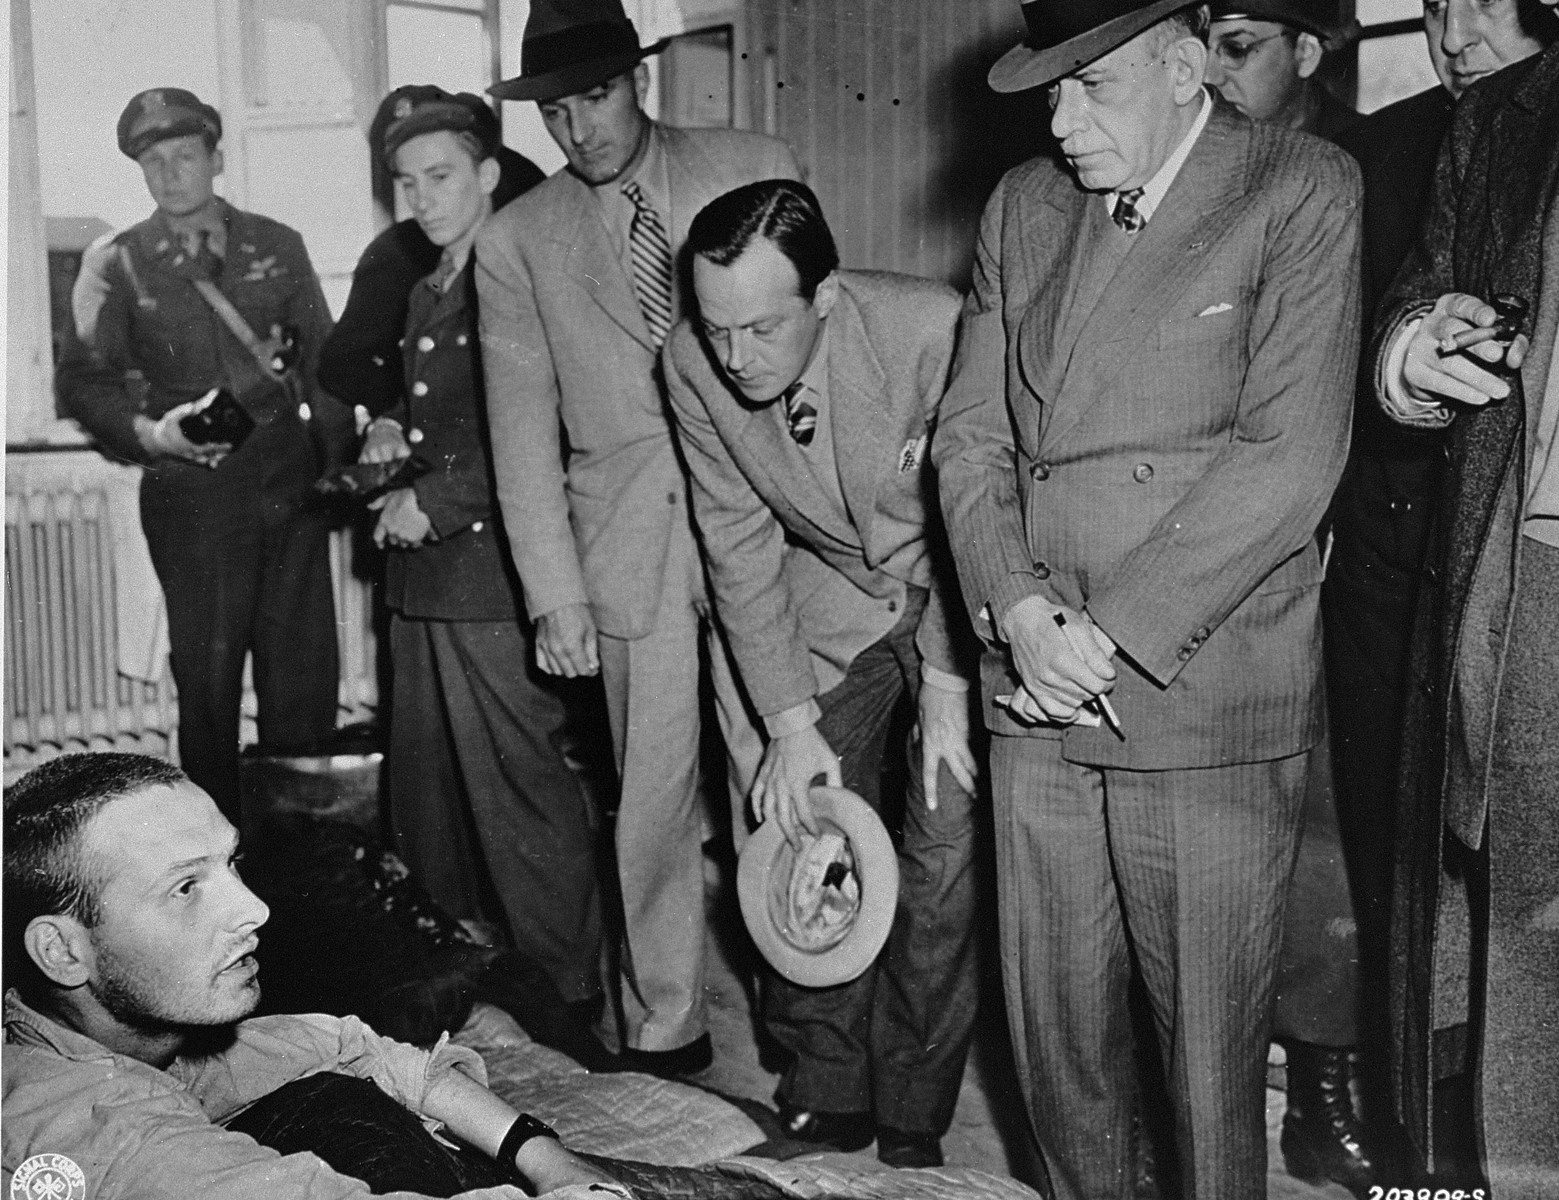 American newspaper editors visit a hospital in the newly liberated Buchenwald concentration camp to speak with survivors about the crimes they witnessed.    Pictured from left to right are: Norman Chandler of the L. A. Times, William I. Nichols of This Week Magazine, and Julius Ochs Adler of the New York Times.